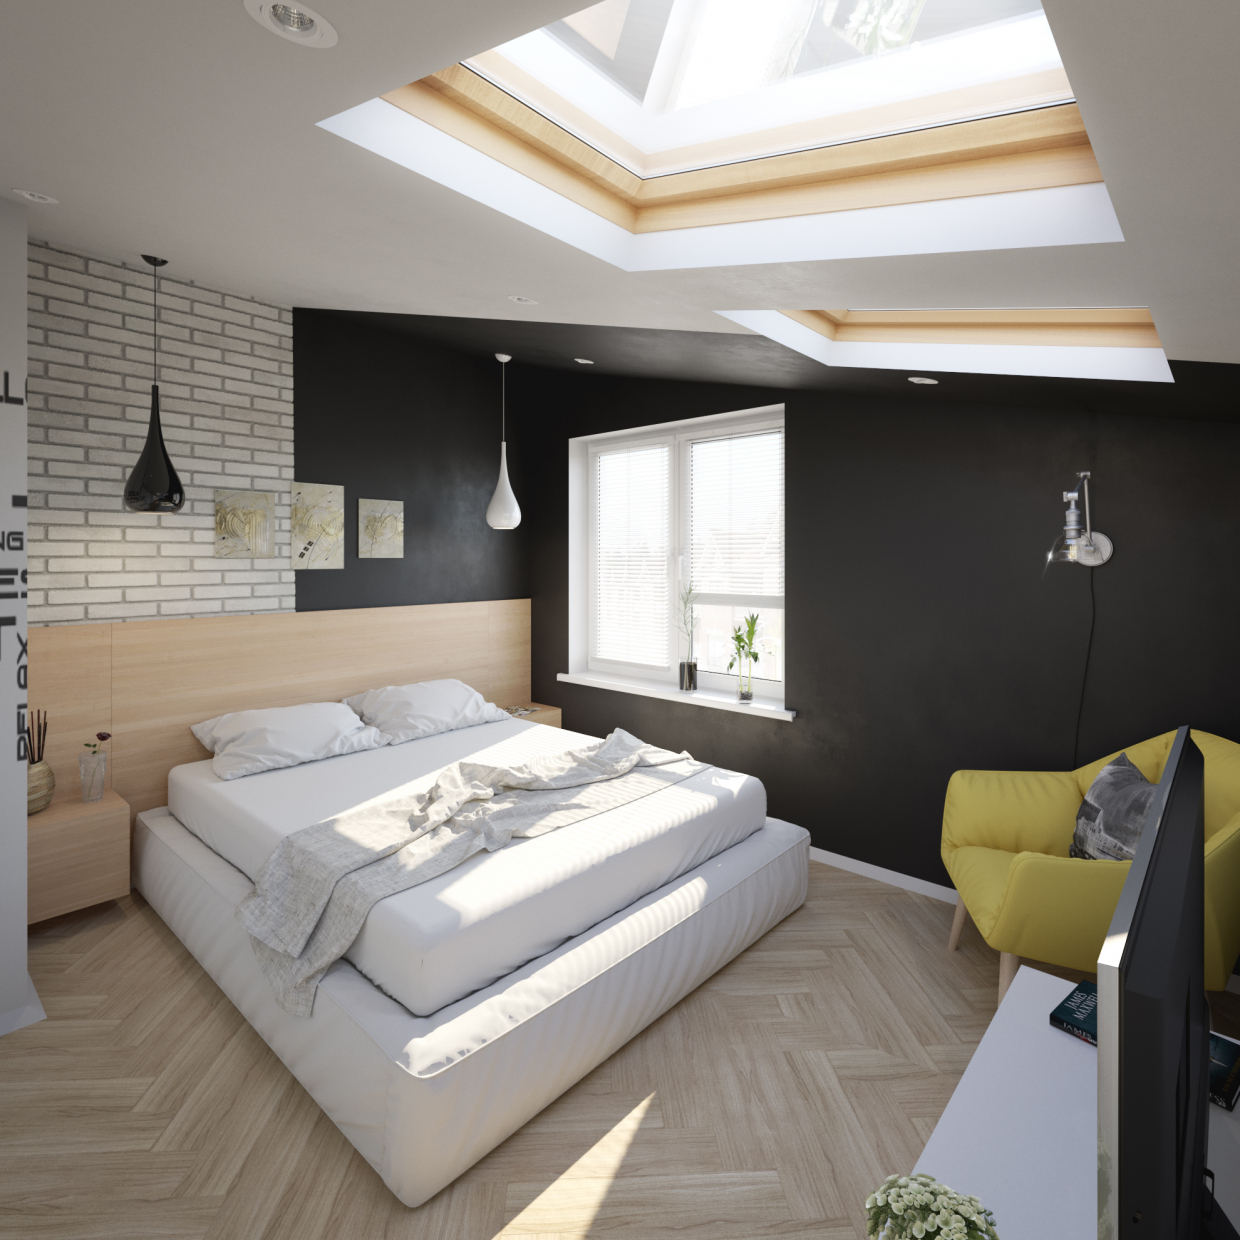 Visualization of theq bedroom in 3d max corona render image